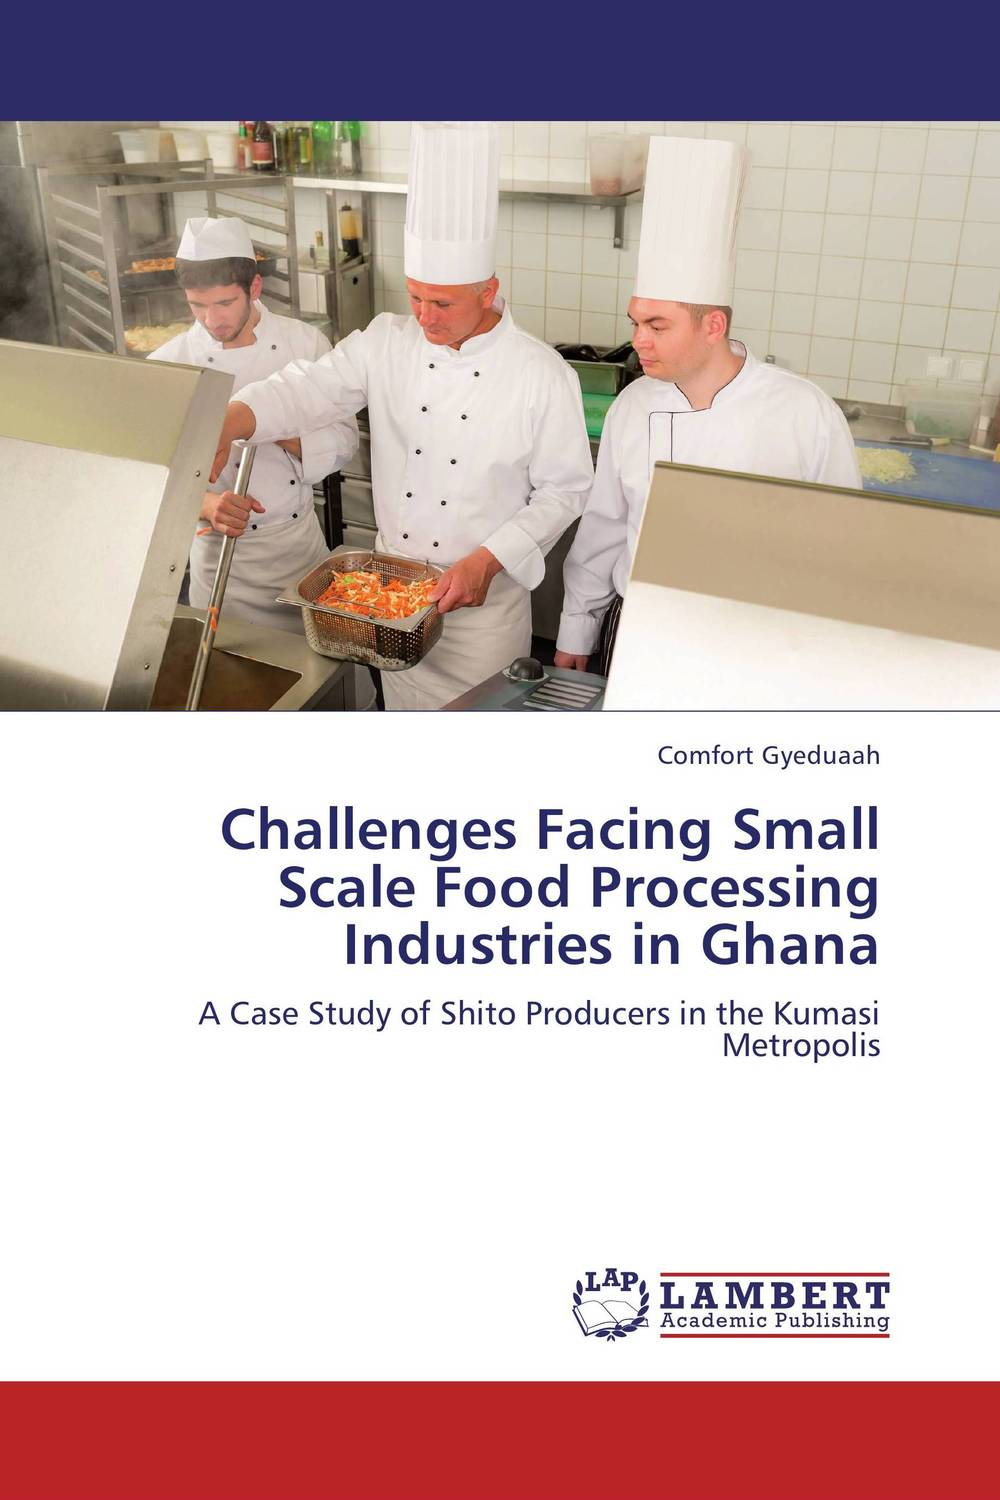 Challenges Facing Small Scale Food Processing Industries in Ghana bernard s schweigert microwaves in the food processing industry